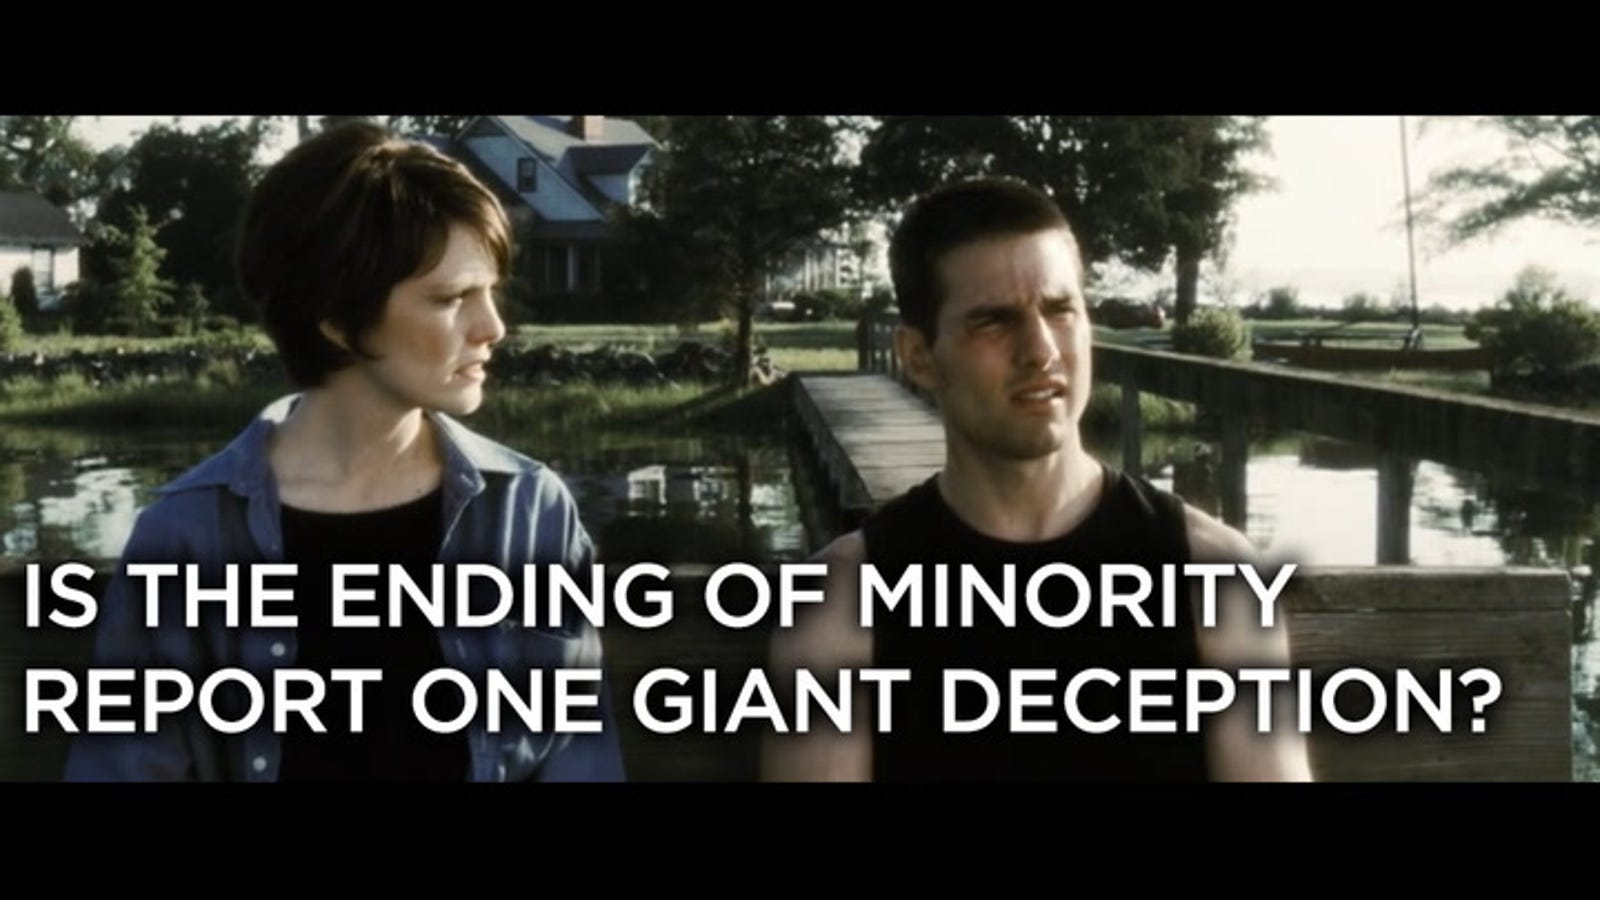 The Entire Ending of Minority Report Is Just a Dream